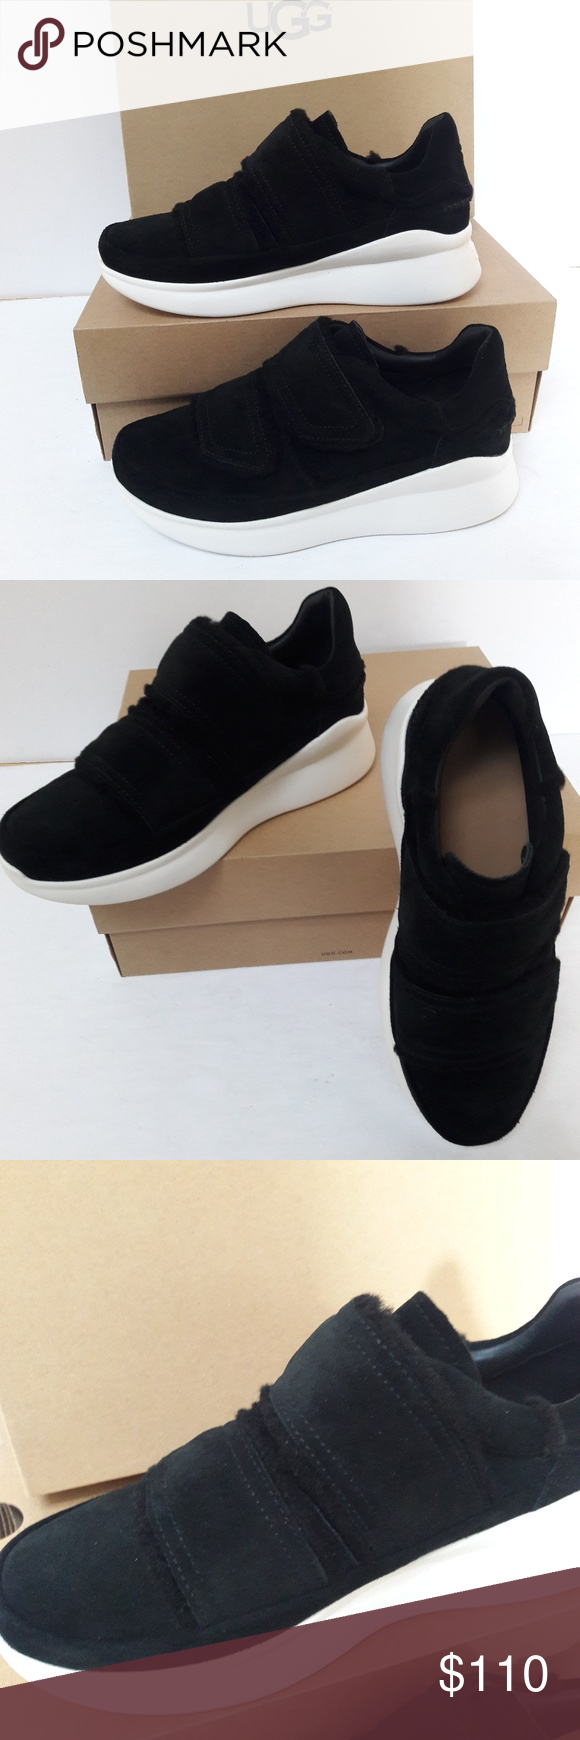 cc0c7a3f0e9 New UGG Spill Seam Sneakers Size 8.5 Brand new in box, trendy UGG ...